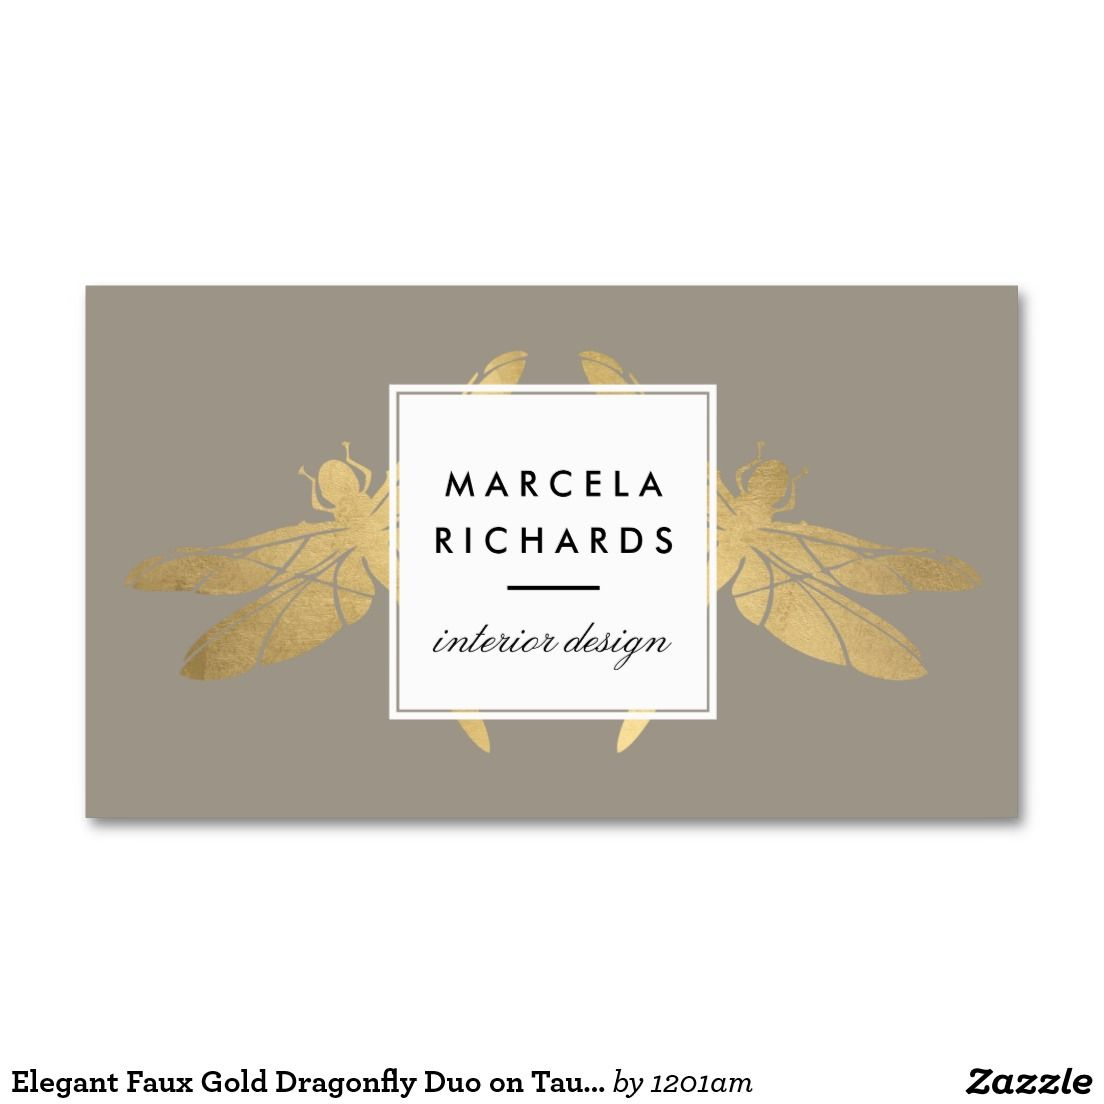 Elegant Faux Gold Dragonfly Duo on Taupe Business Card | Dragonflies ...